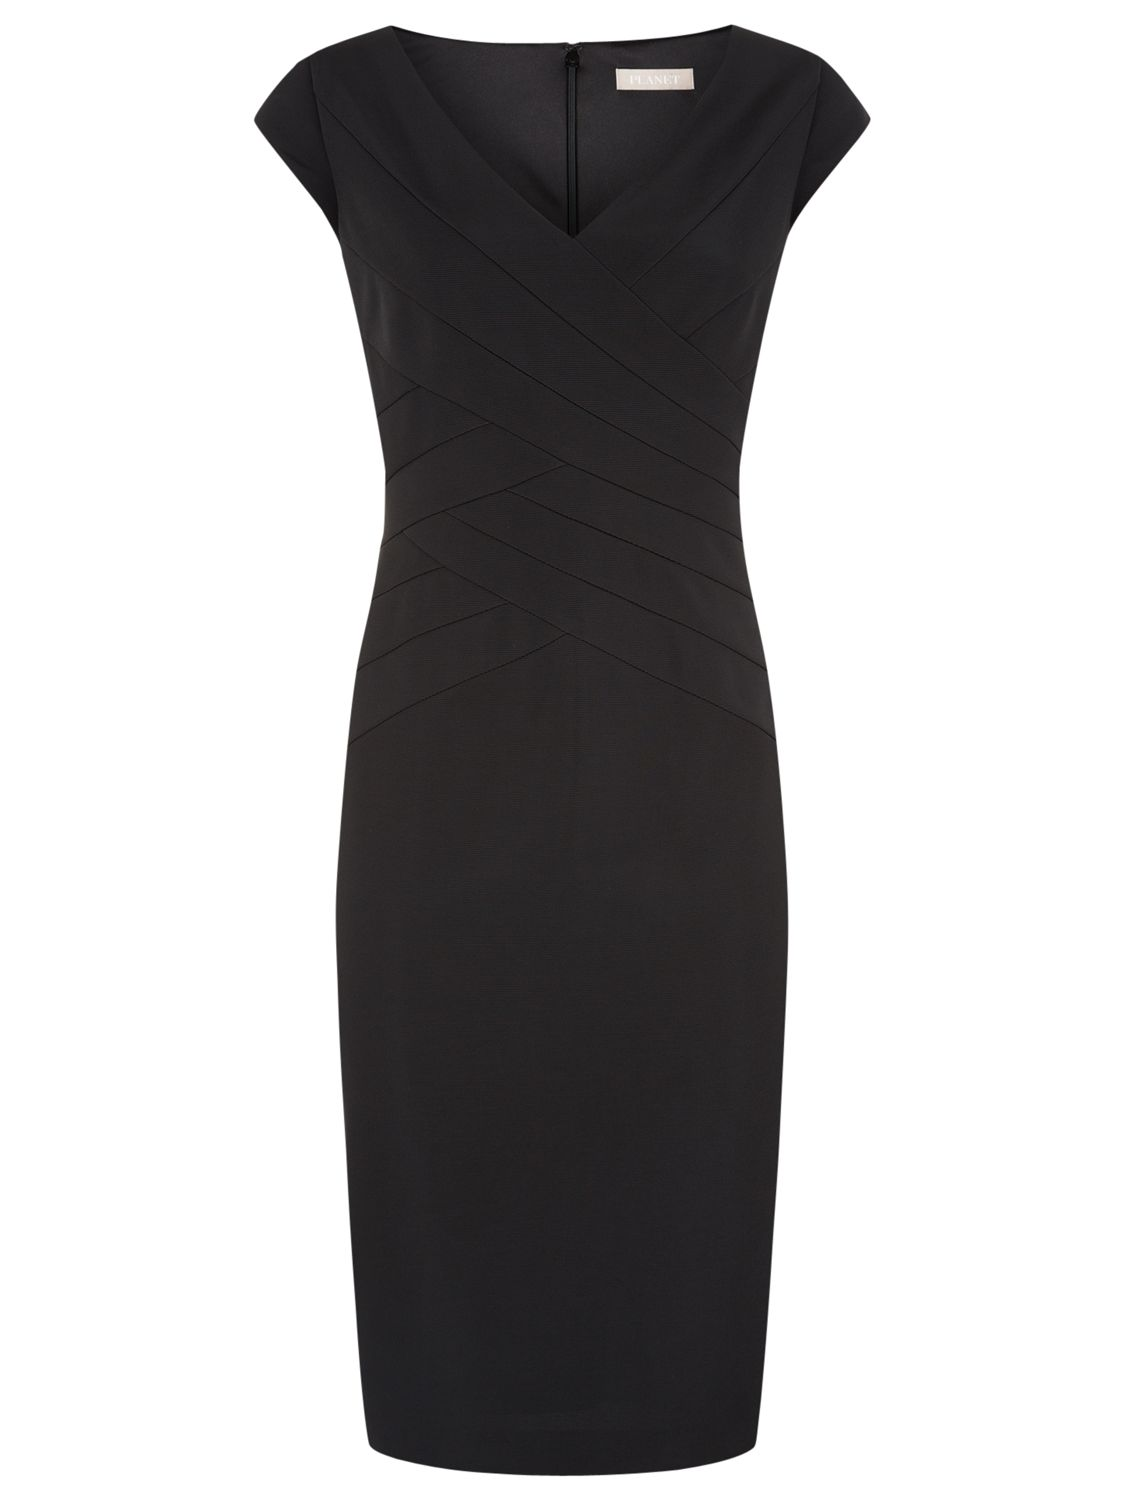 planet bandage midi dress black, planet, bandage, midi, dress, black, 12|14|10, clearance, womenswear offers, womens dresses offers, women, plus size, womens dresses, special offers, 1607417